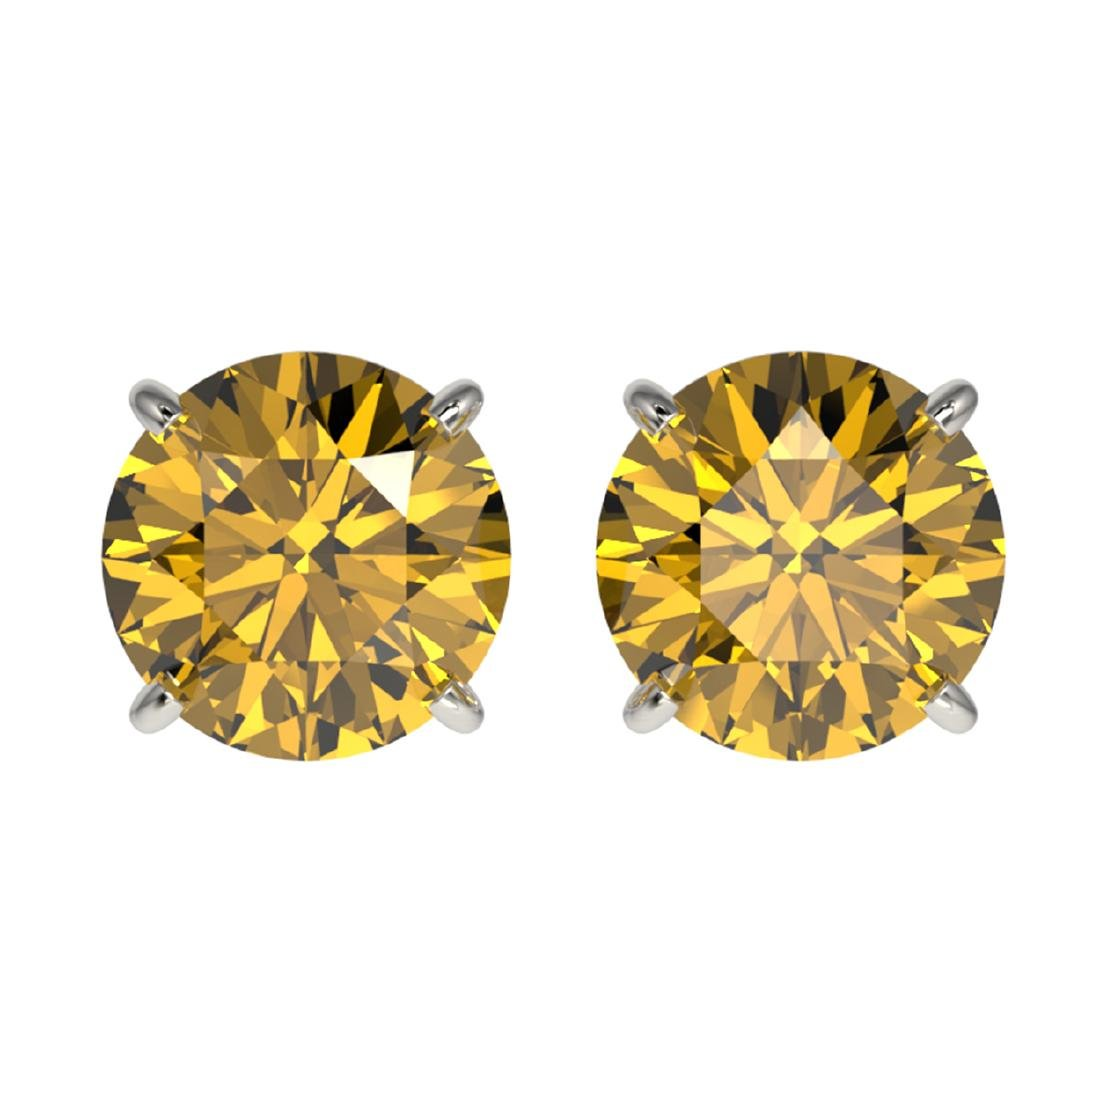 1.92 ctw Intense Yellow Diamond Stud Earrings 10K White